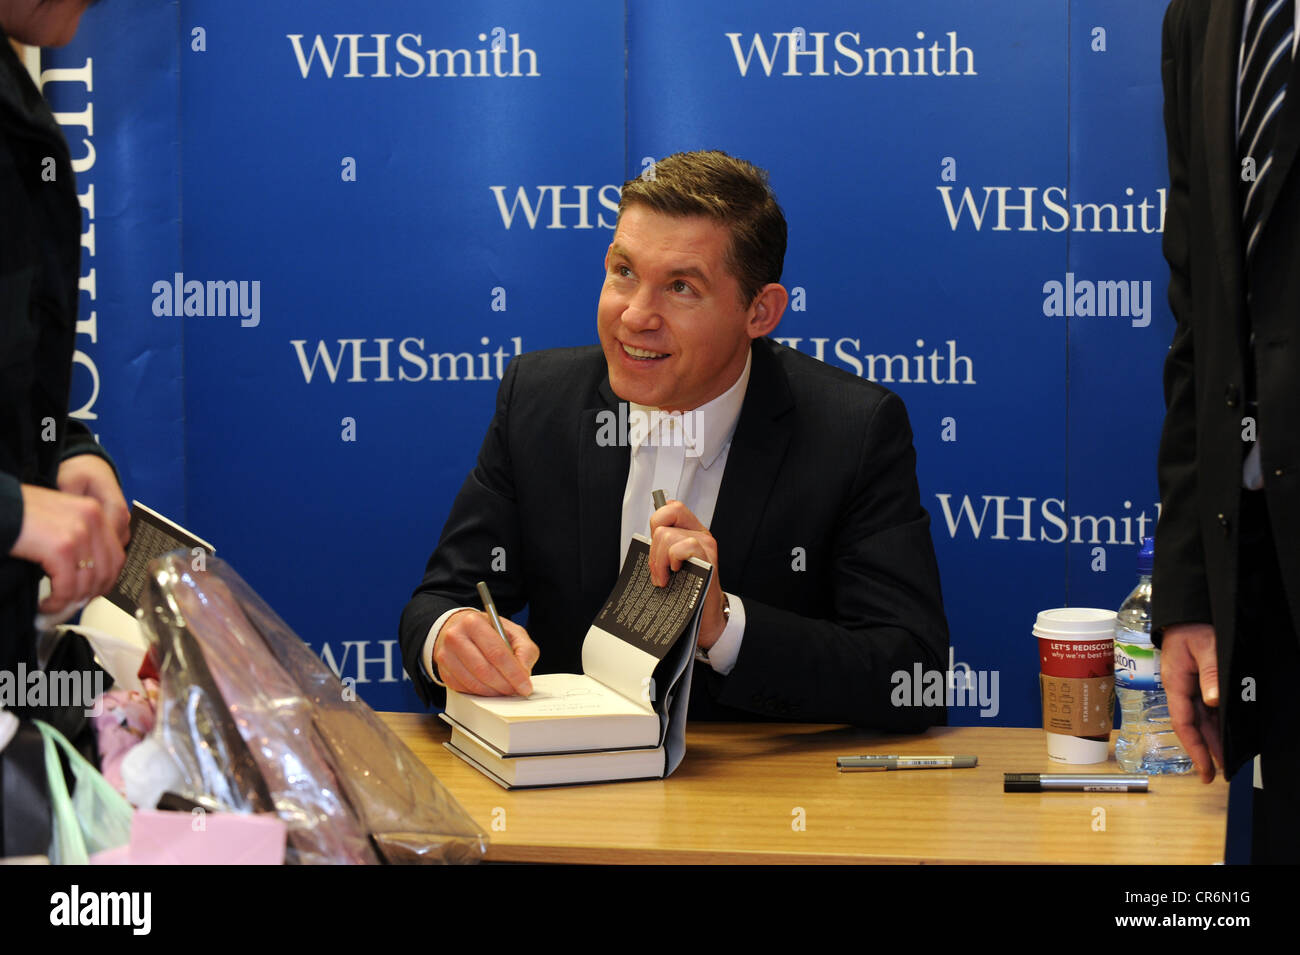 Comedian Lee Evans signing copies of his autobiography 'RoadRunner' at WHSmith in Brighton - Stock Image